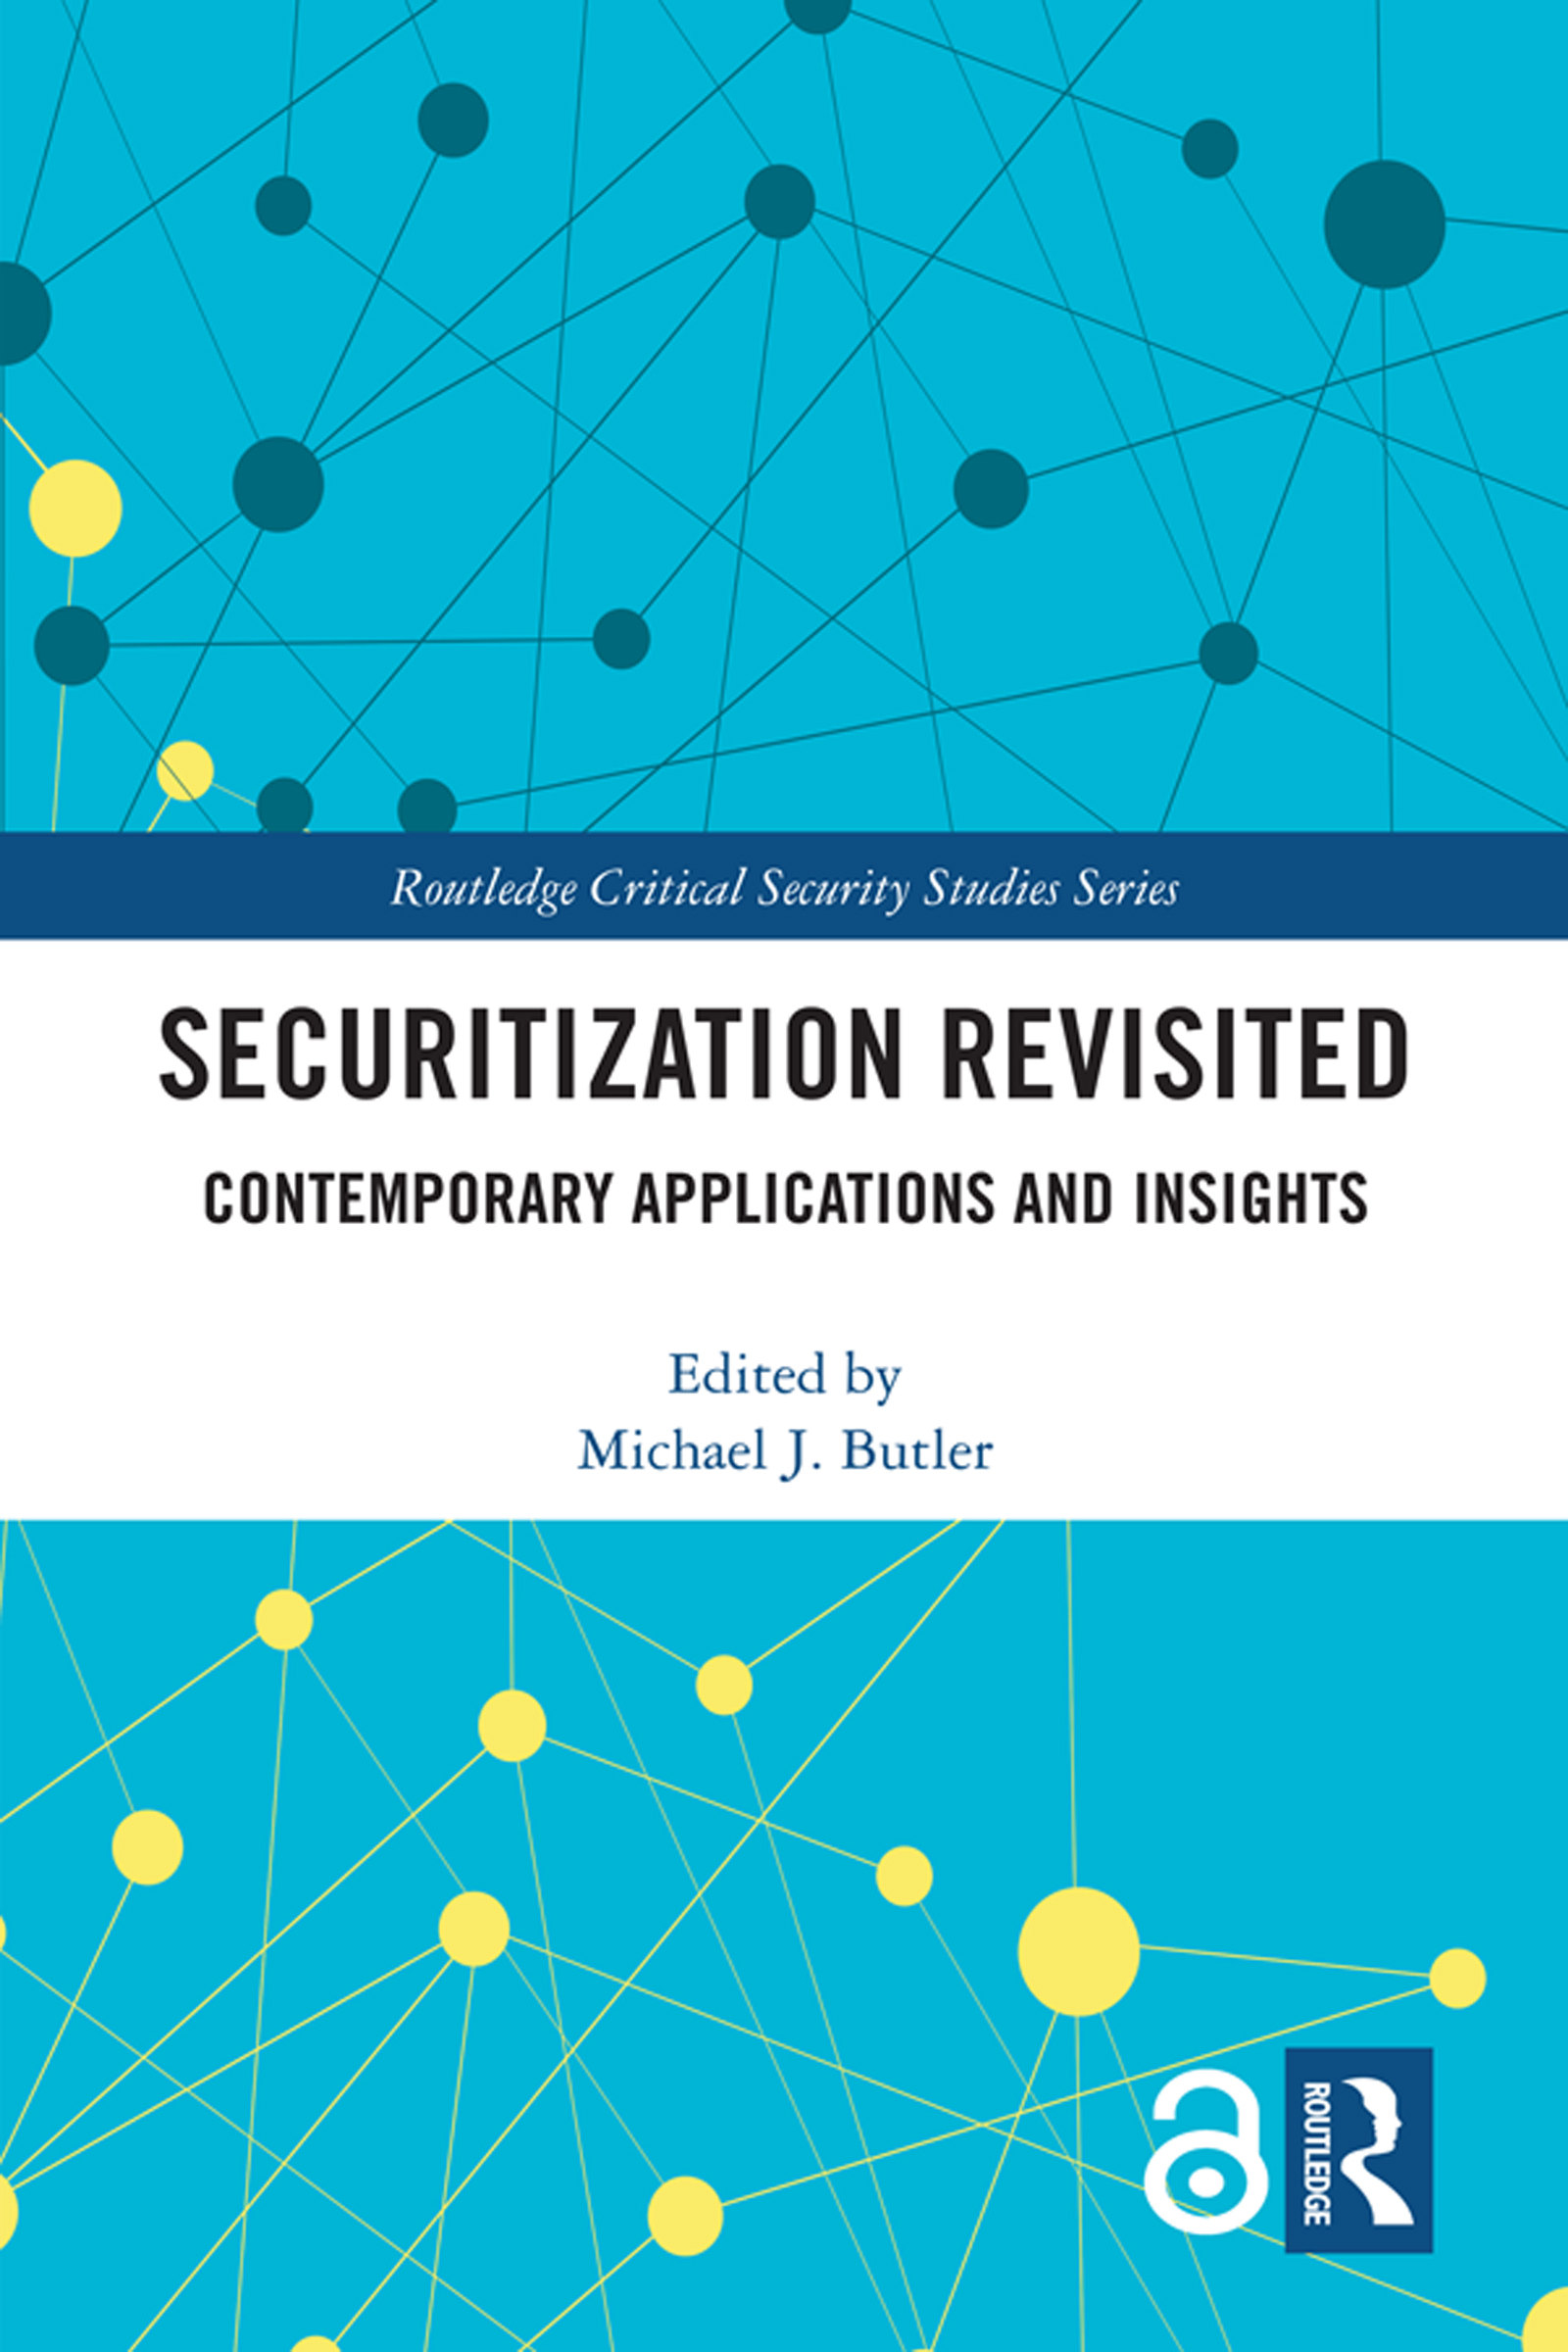 Securitization Revisited